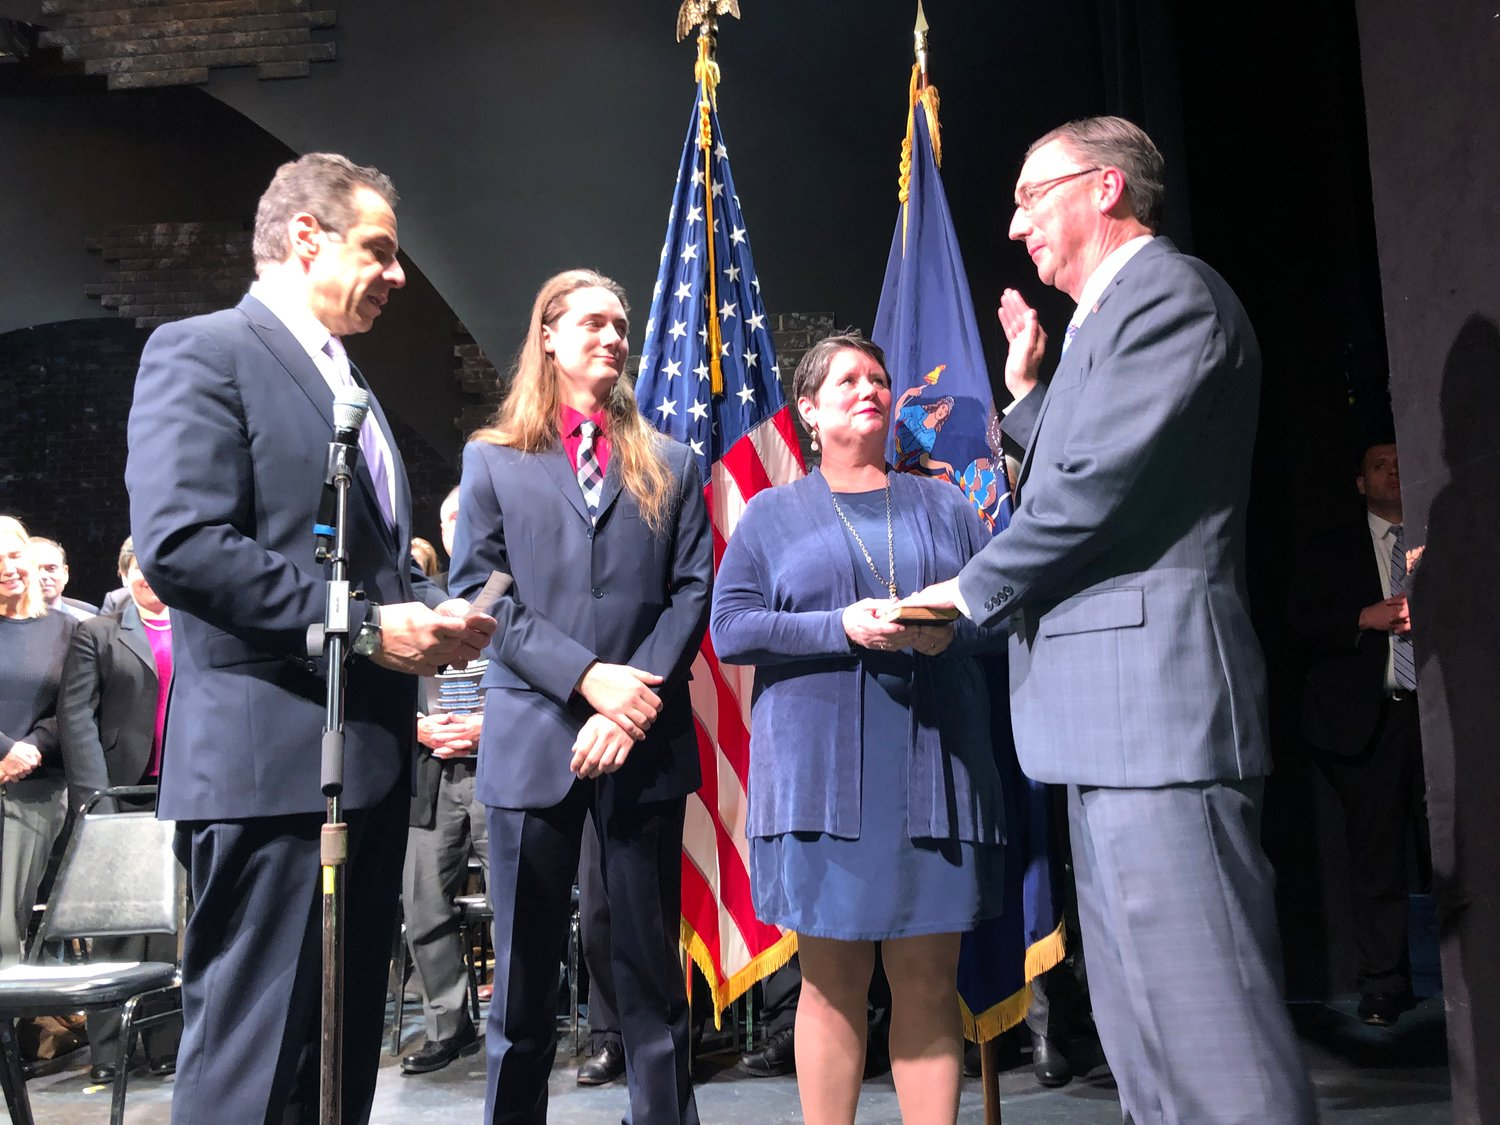 Jim Gaughran, right, with his wife, Carol, and son, Michael, was sworn in by Gov. Andrew Cuomo at the Engeman Theater in Northport, becoming the state senator for the 5th District.